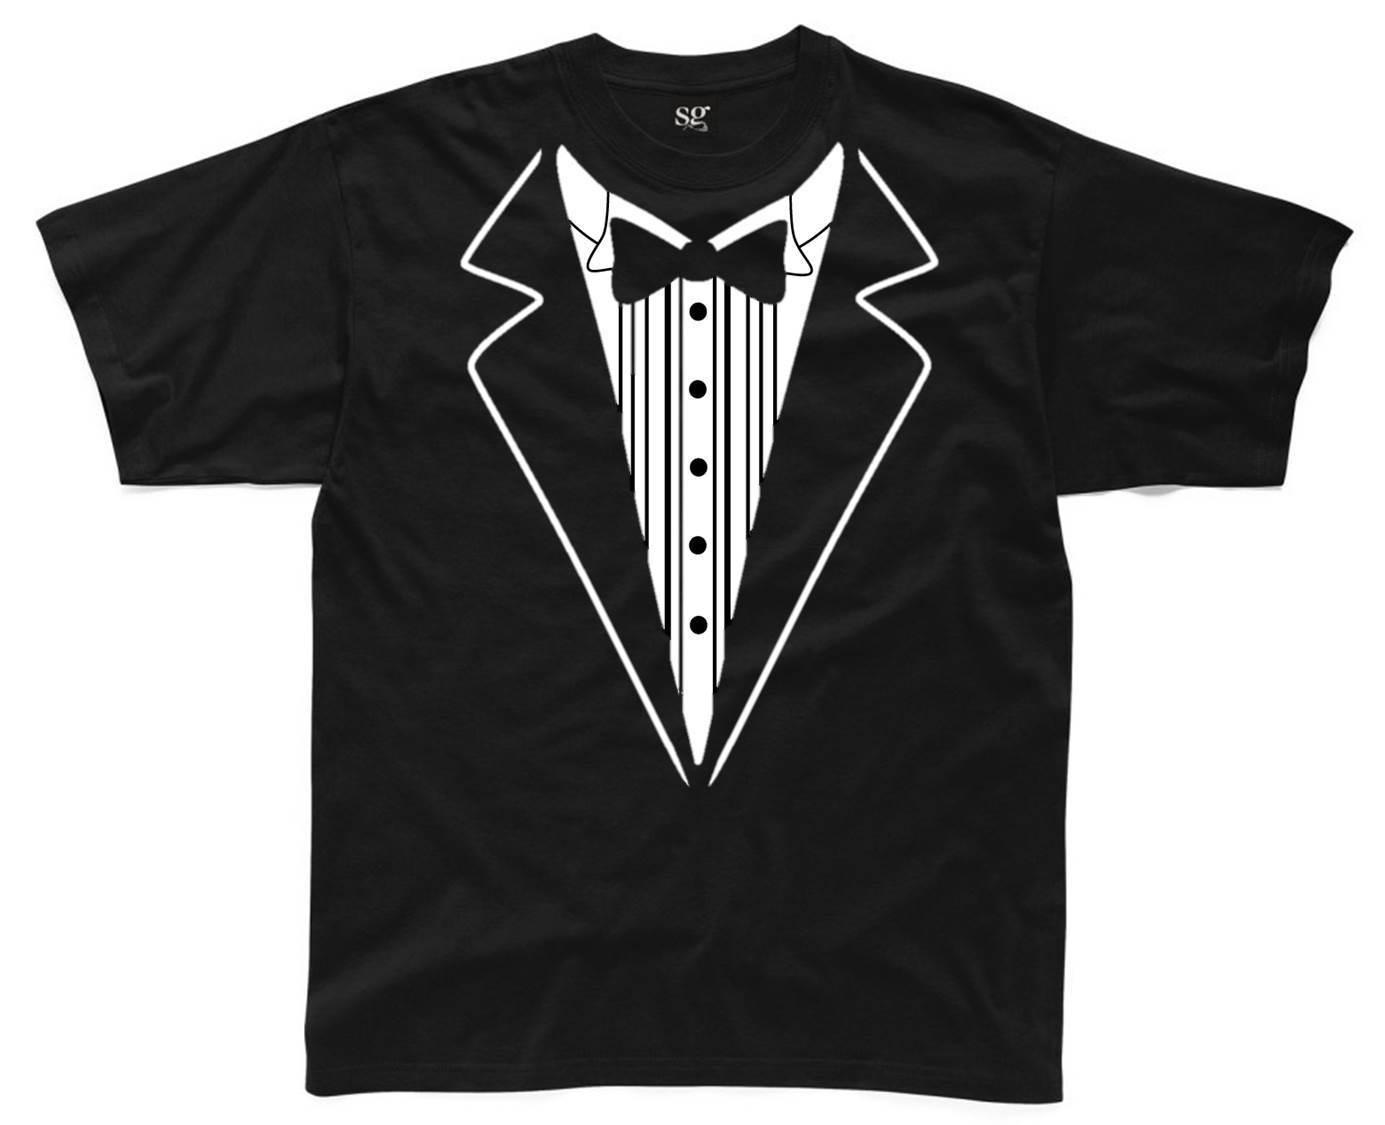 1a1f9aab6c7f TUXEDO Mens T Shirt S 3XL Black Funny Printed Novelty Costume Shirt Bow Tie  Mans Unique Cotton Short Sleeves O Neck T Shirt Awesome Shirts Cool T Shirts  For ...